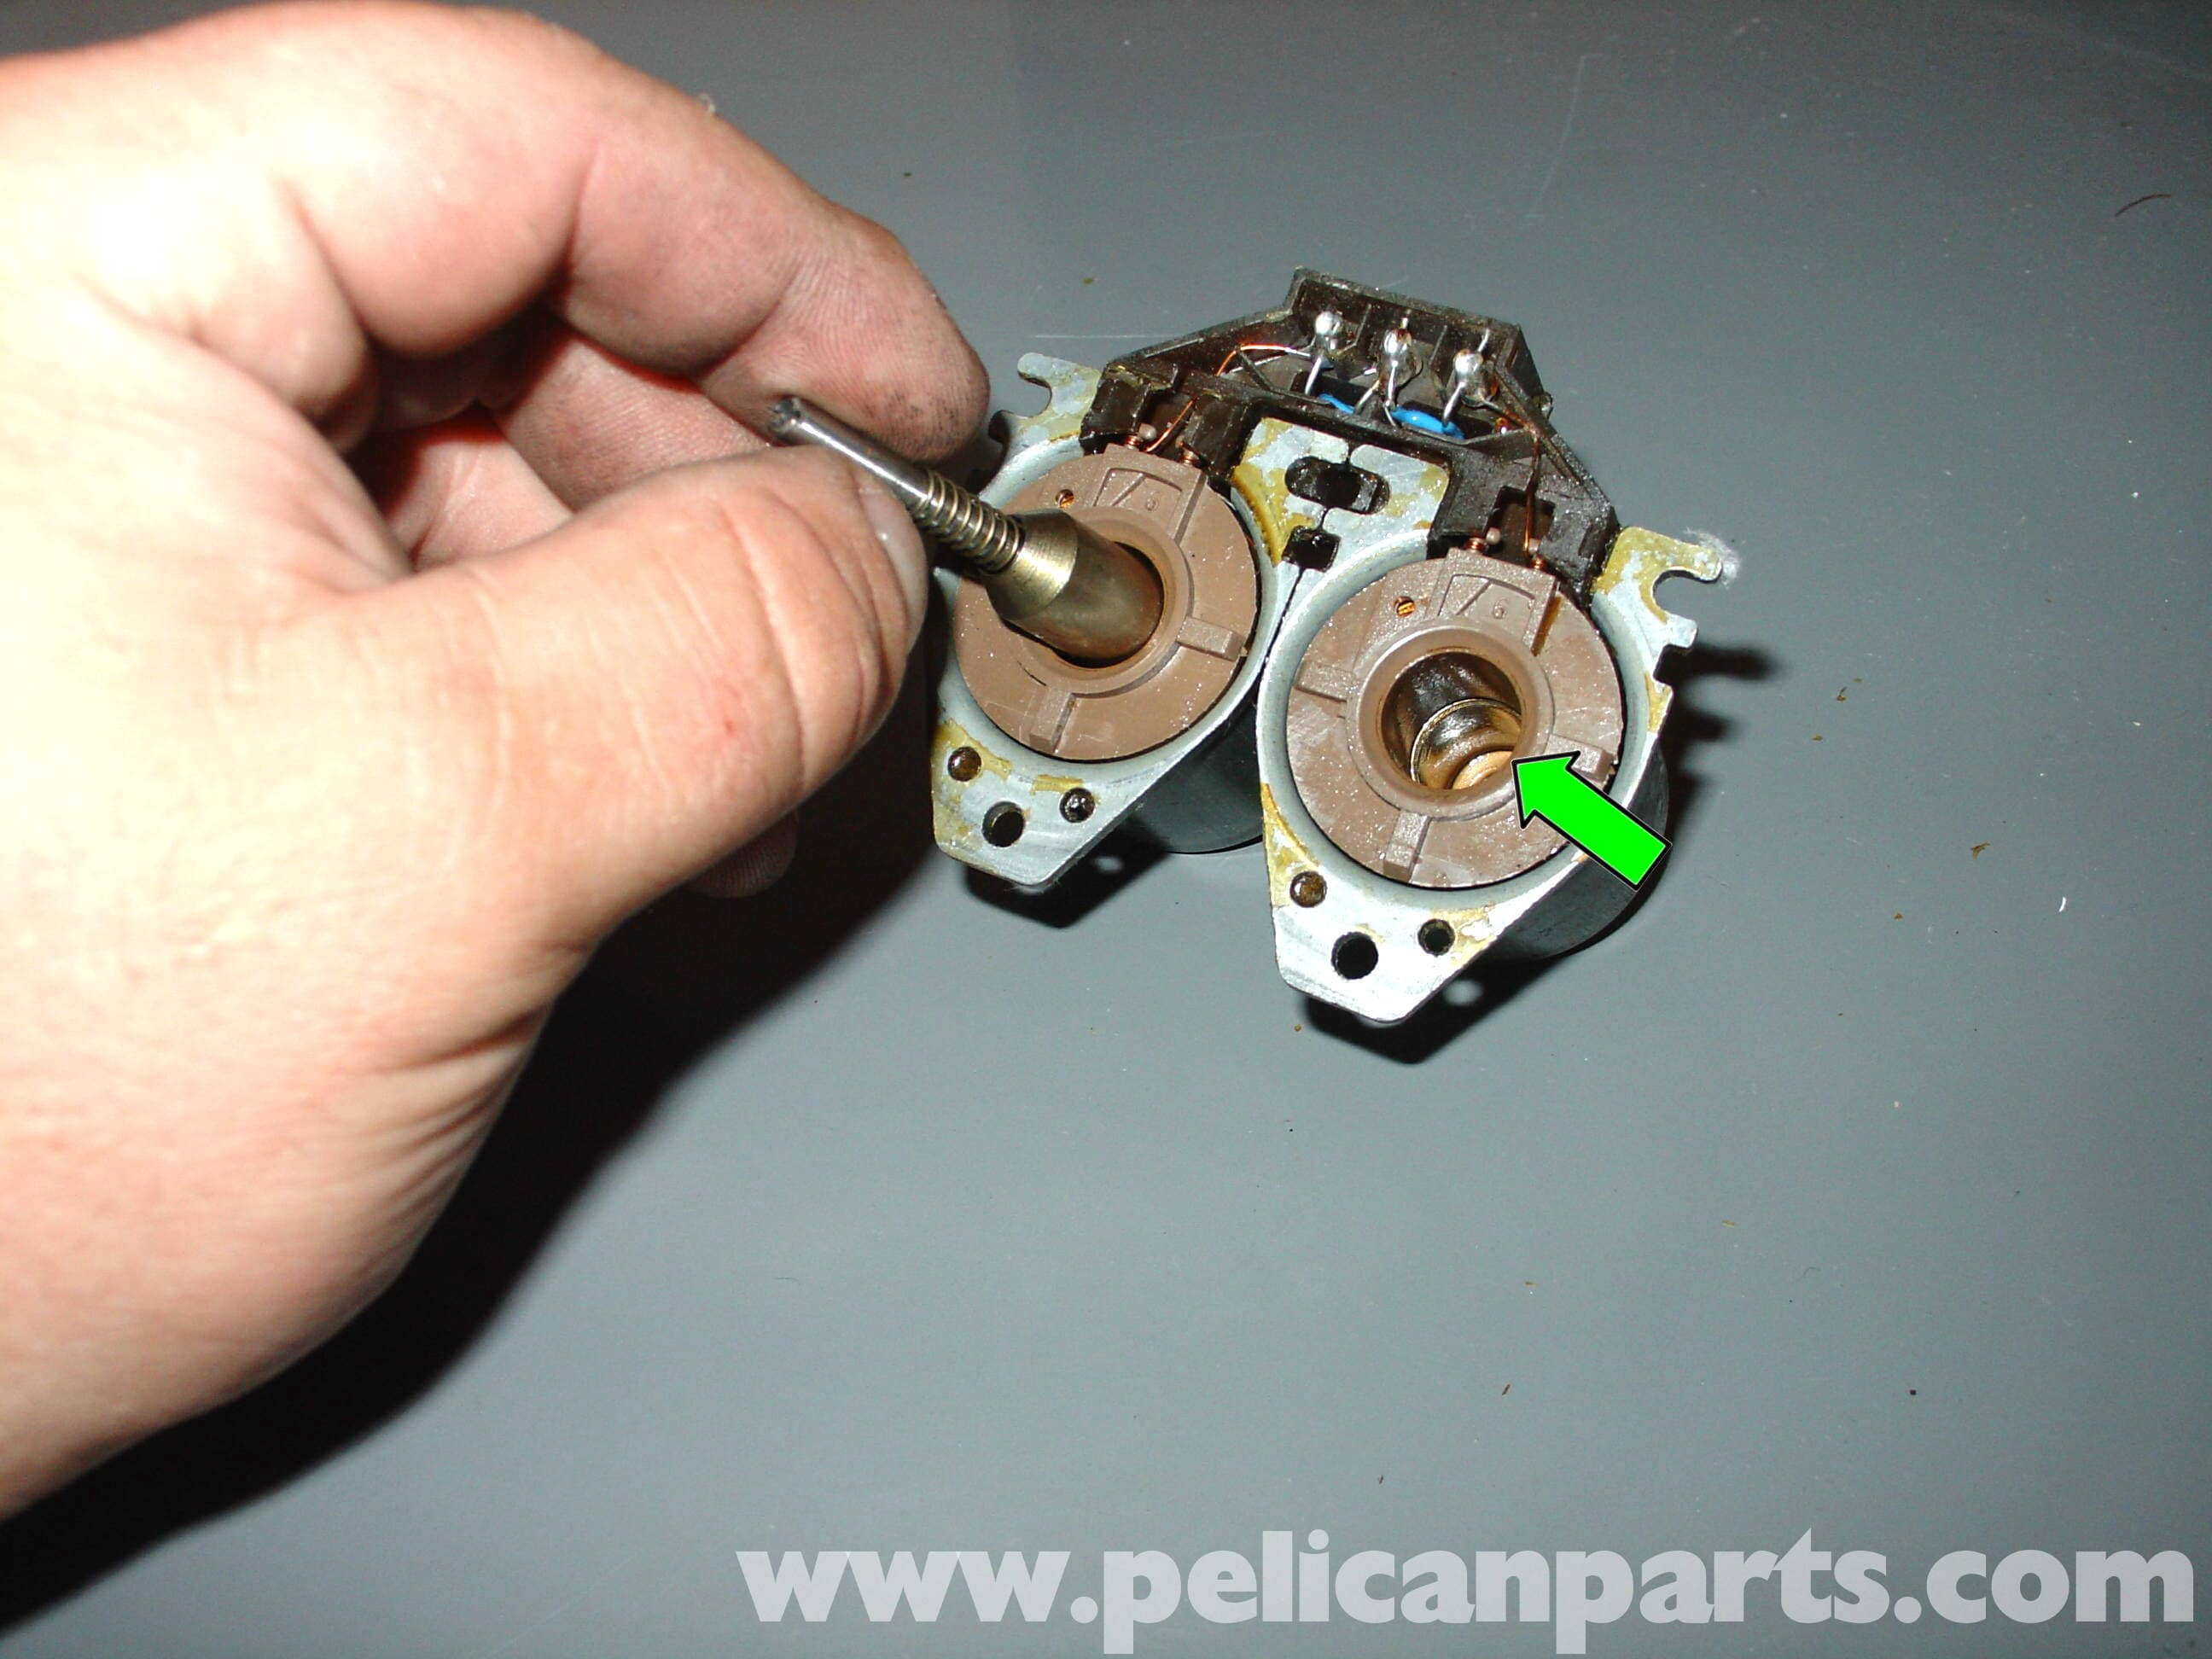 W210 Ac Wiring Diagram : Mercedes benz w heater control valve disassembly and cleaning